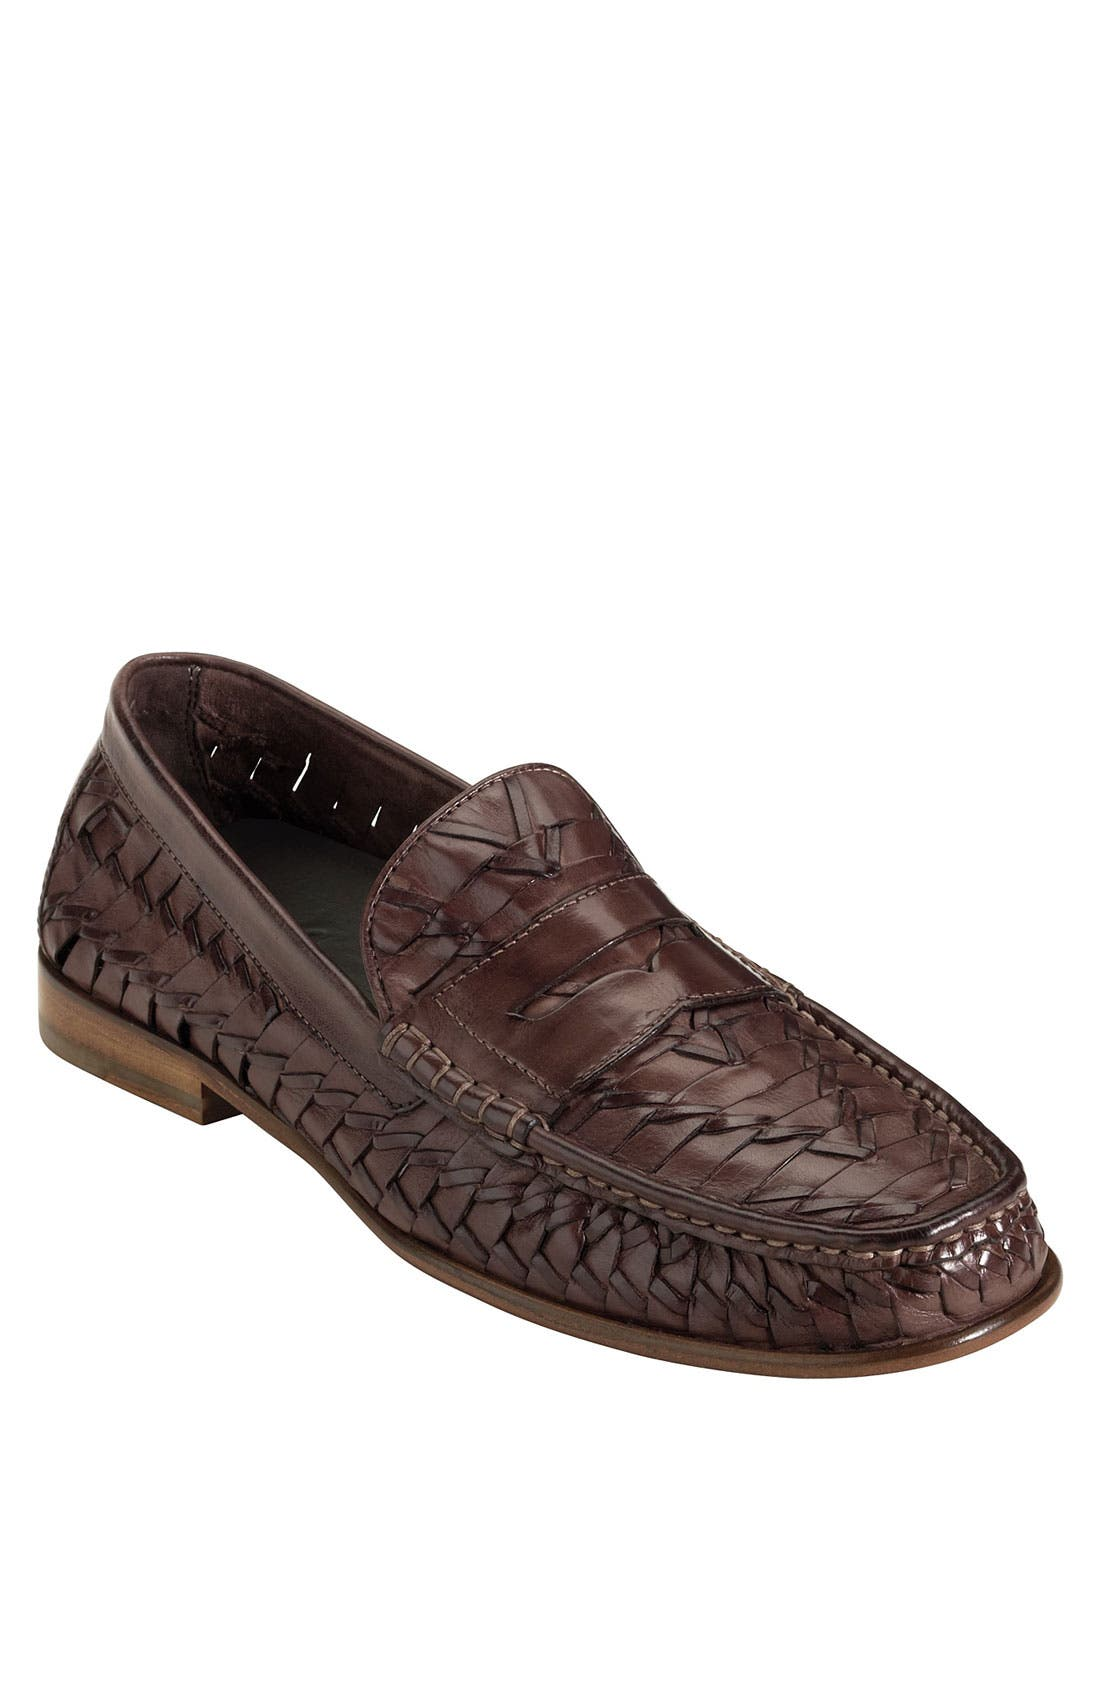 Alternate Image 1 Selected - Cole Haan 'Air Tremont' Penny Loafer